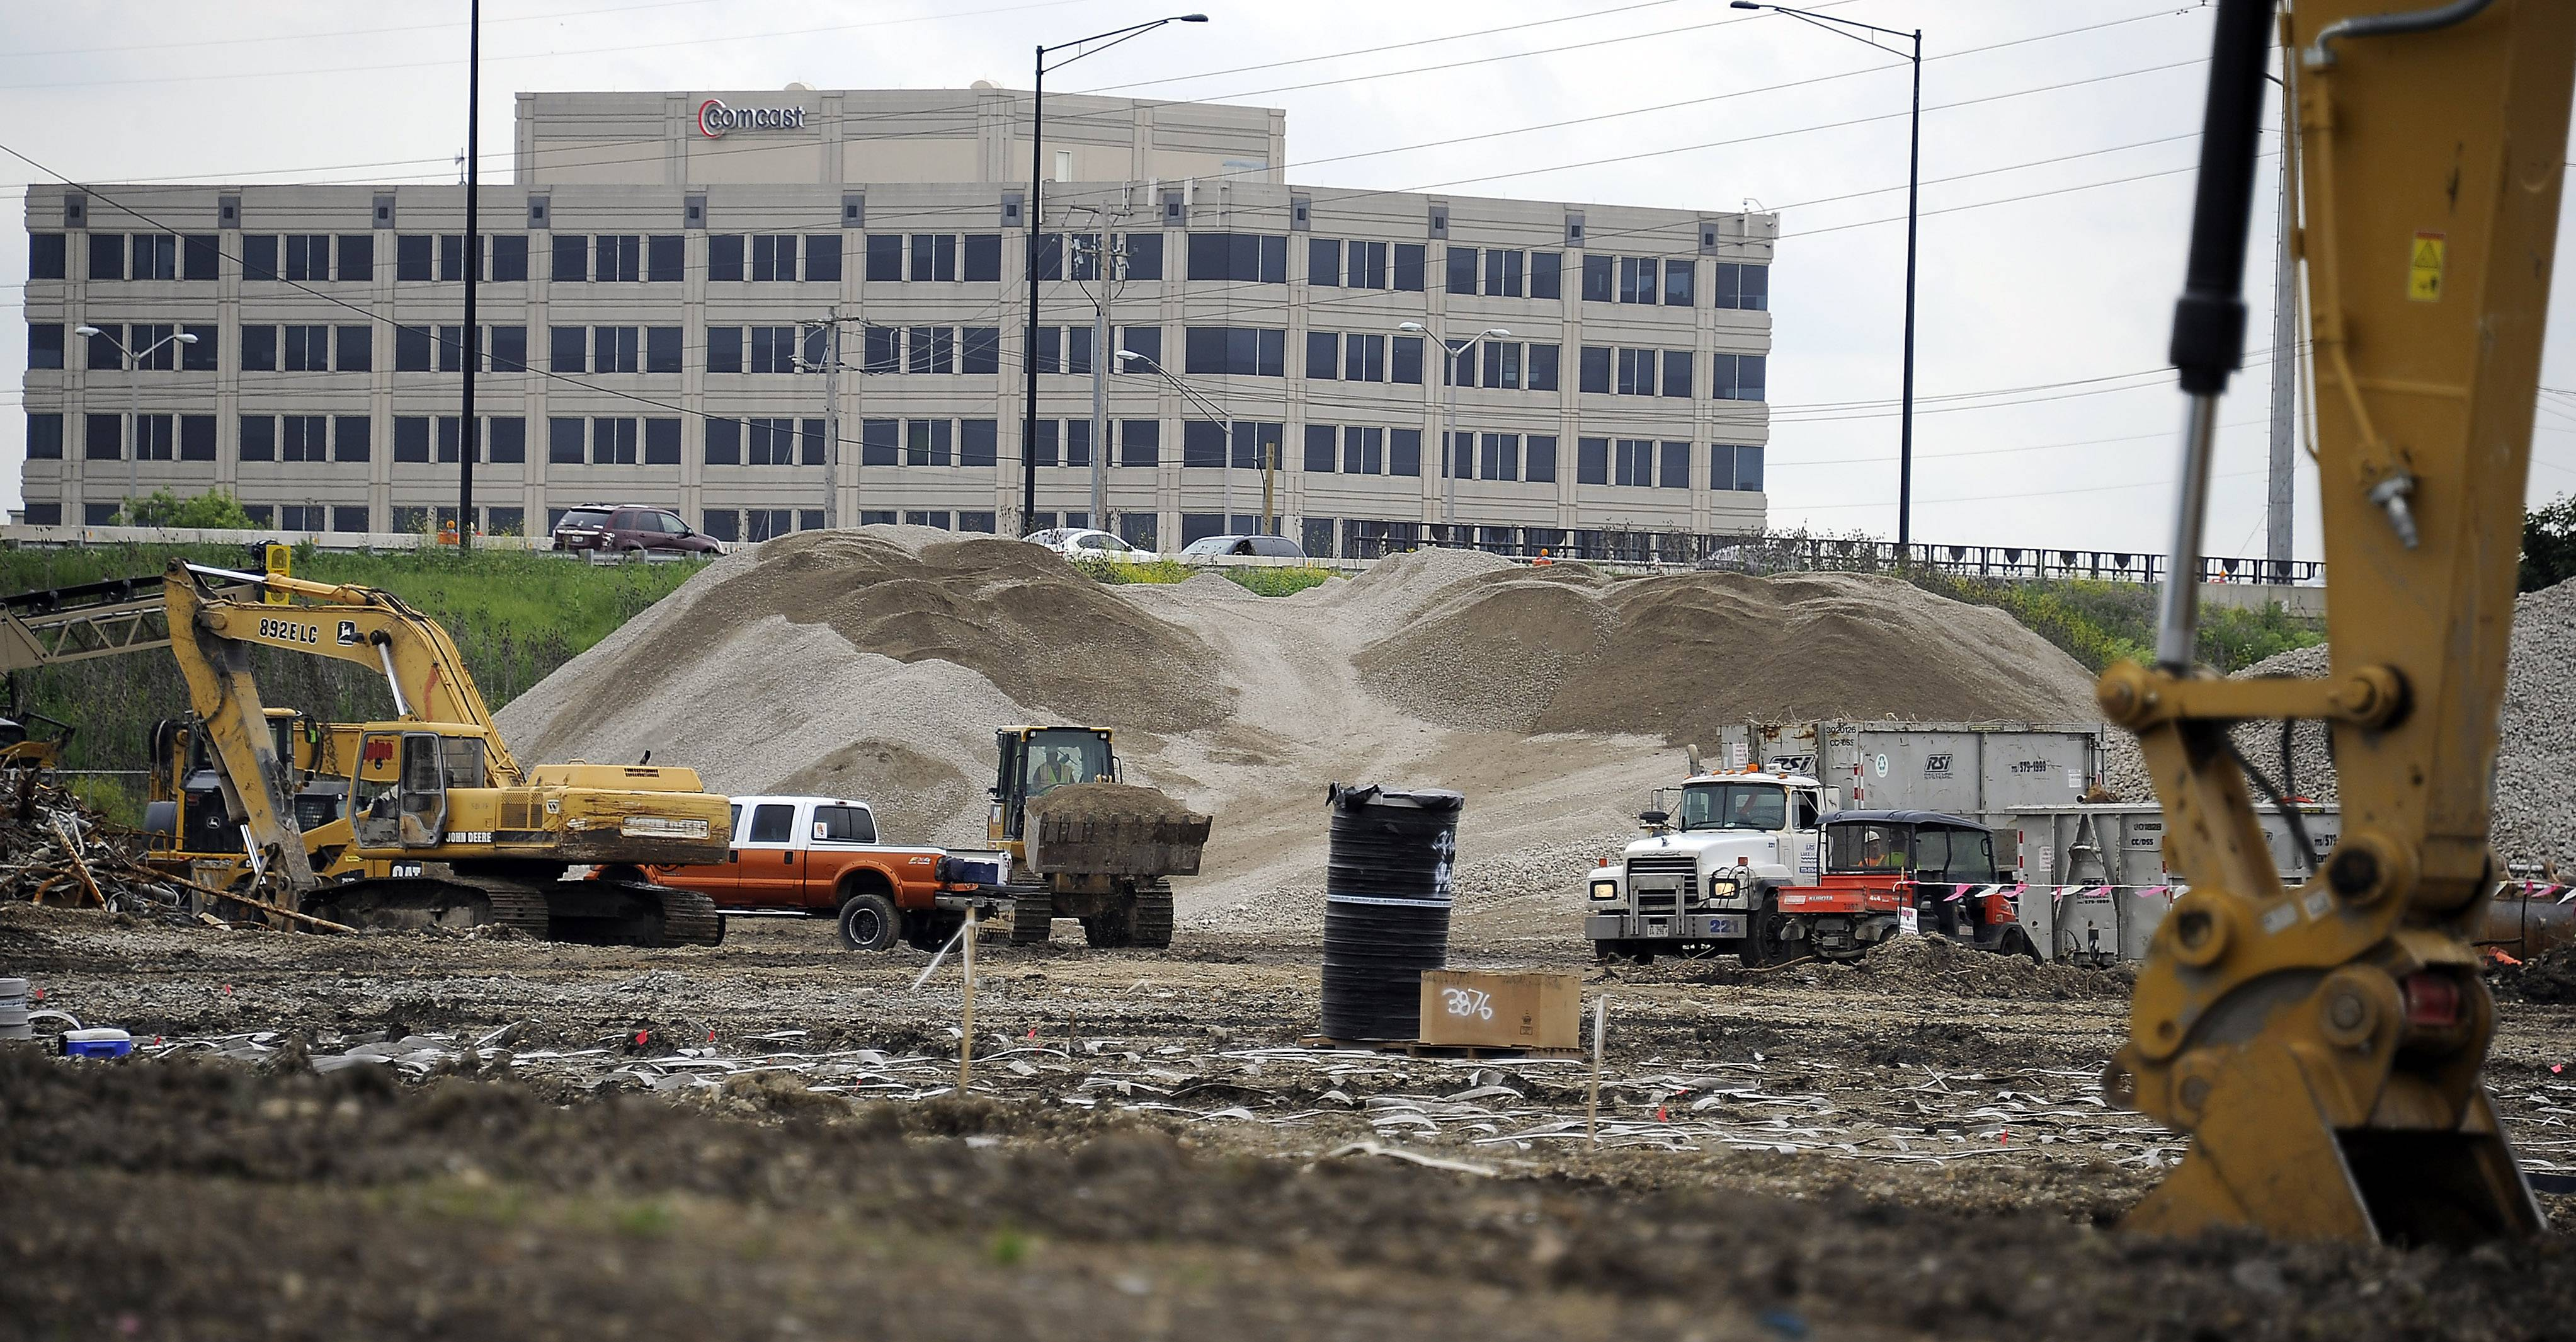 Construction is in full swing for the new $300 million Zurich North America headquarters.